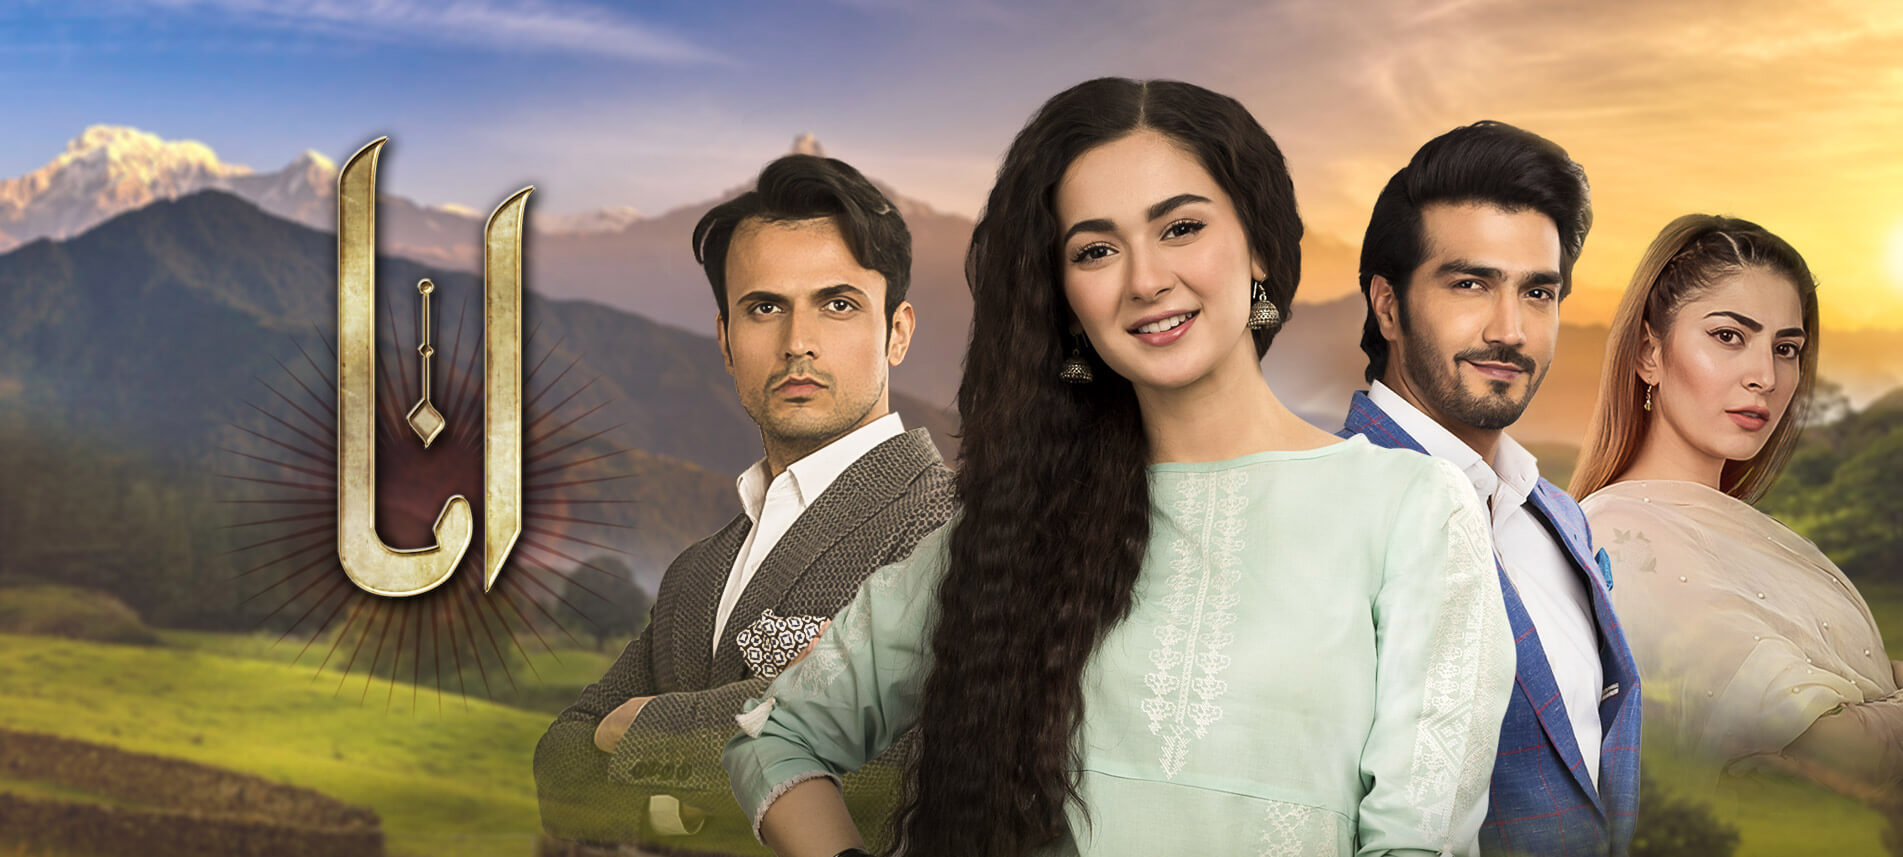 Watch Anaa Episode 13